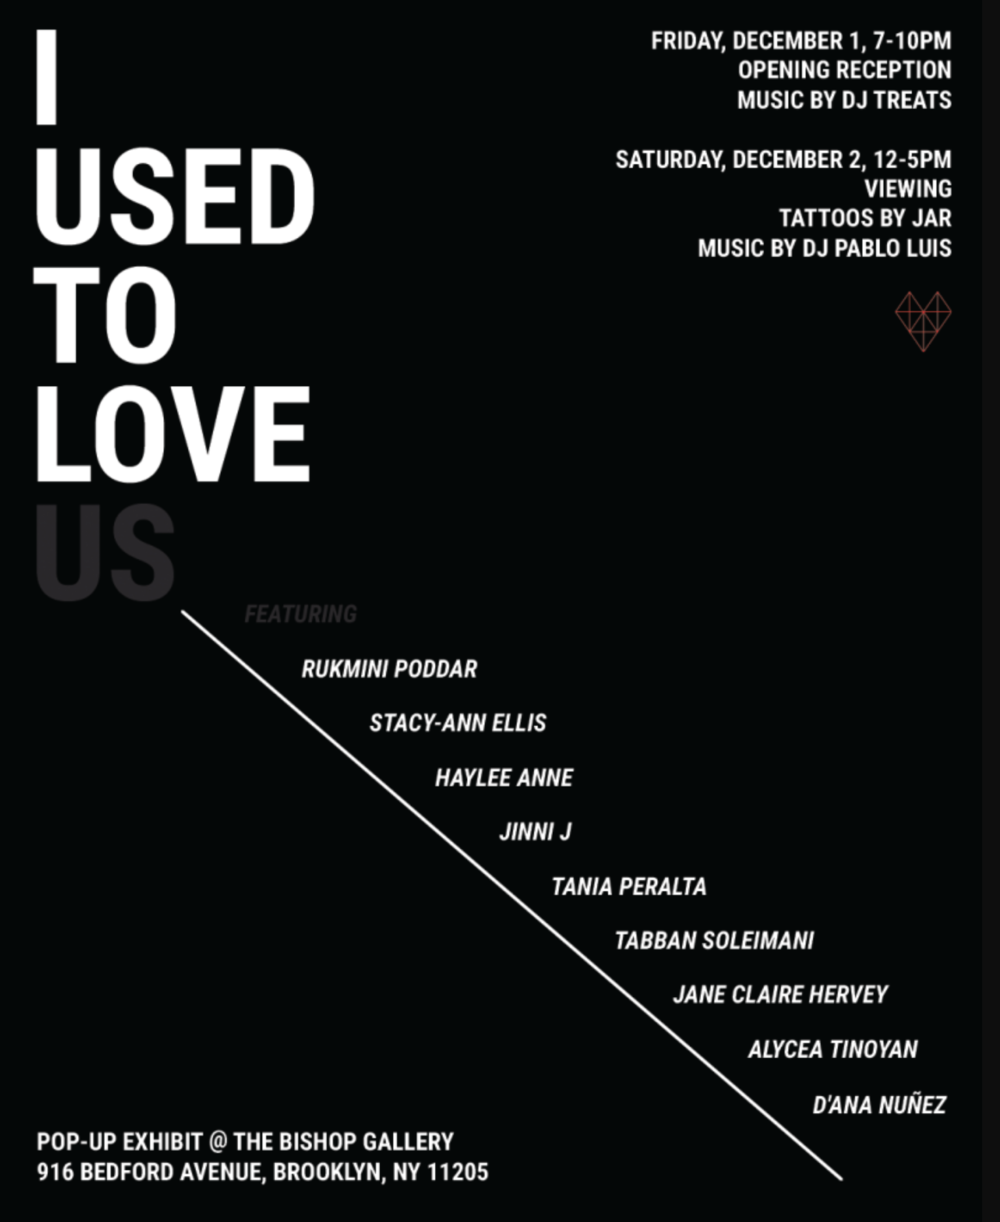 Official poster for art exhibition: I USED TO LOVE US